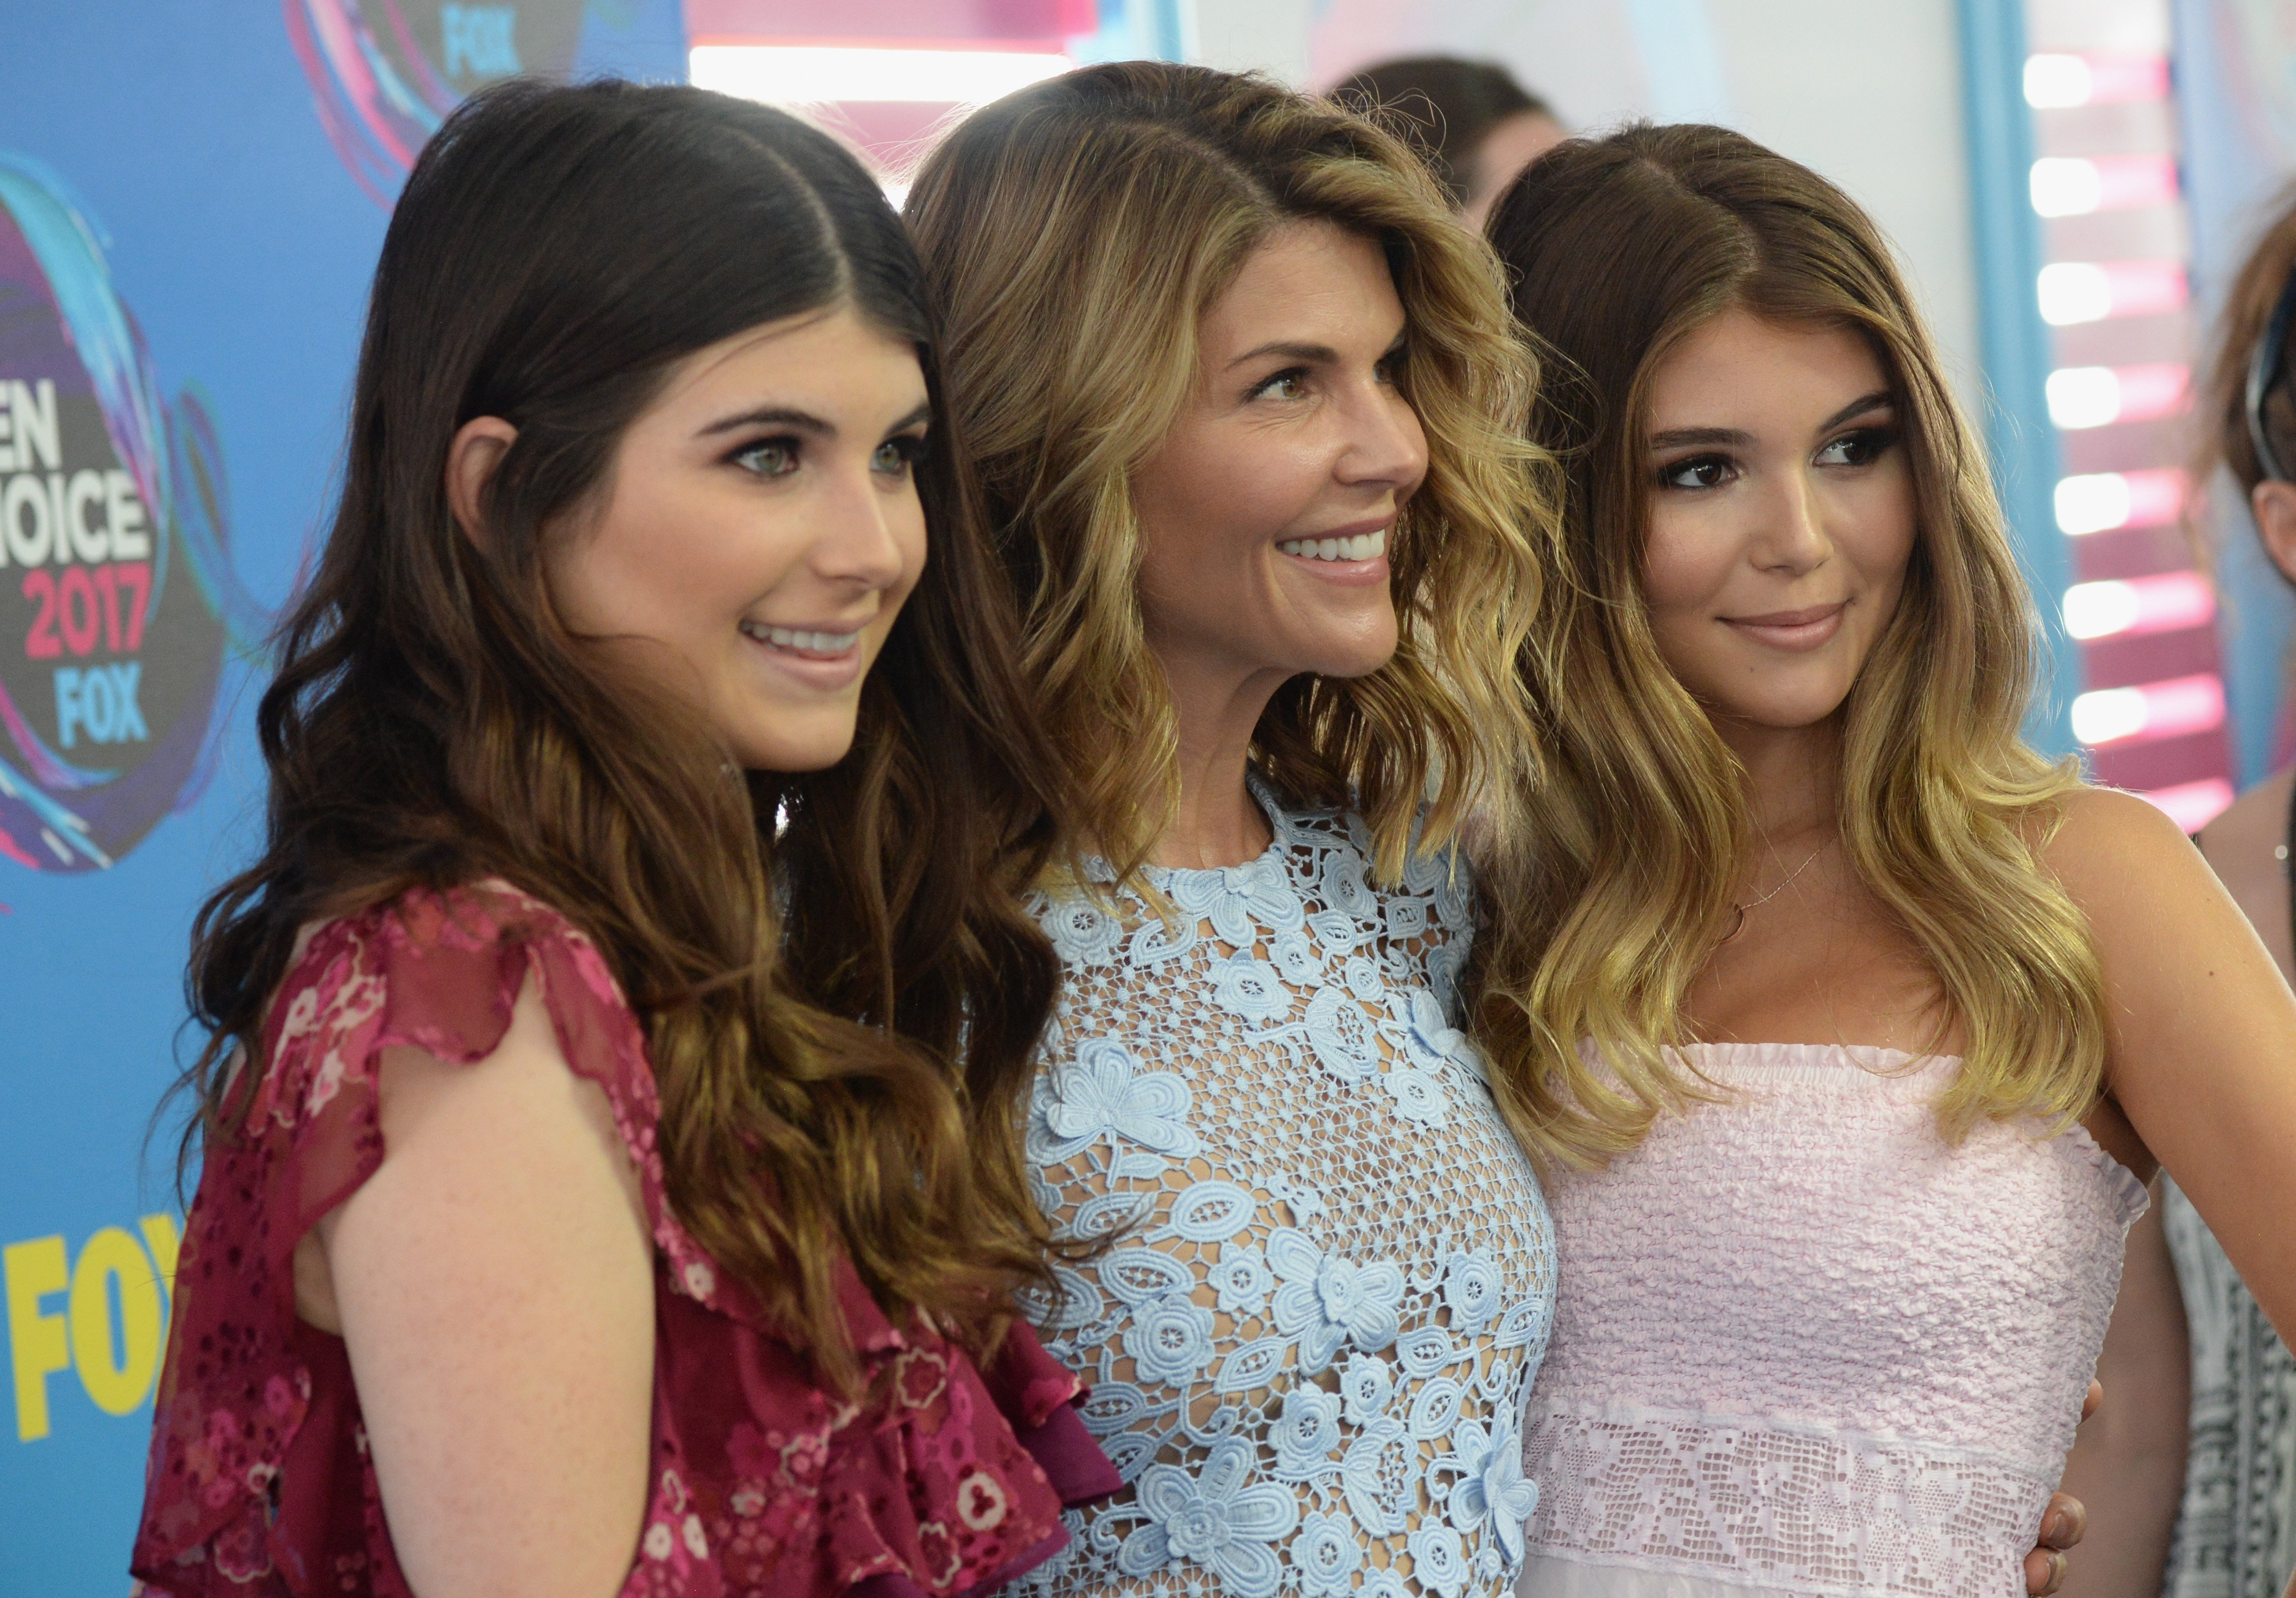 Lori Loughlin with her daughters, Isabella Rose and Olivia Jade at the 2017 Teen Choice Awards| Photo: Getty Images